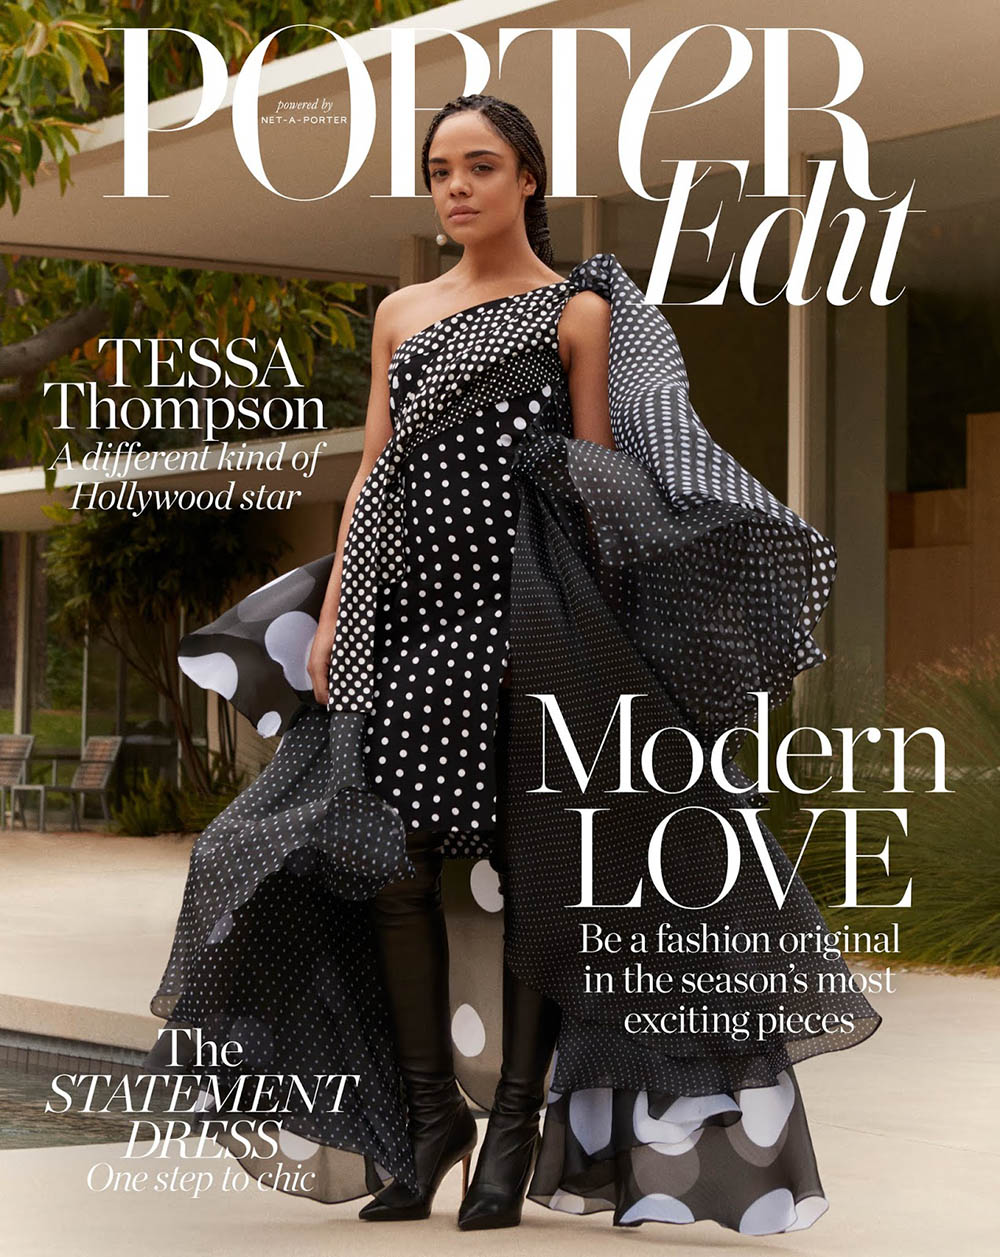 Tessa Thompson covers Porter Edit June 29th, 2018 by Nagi Sakai